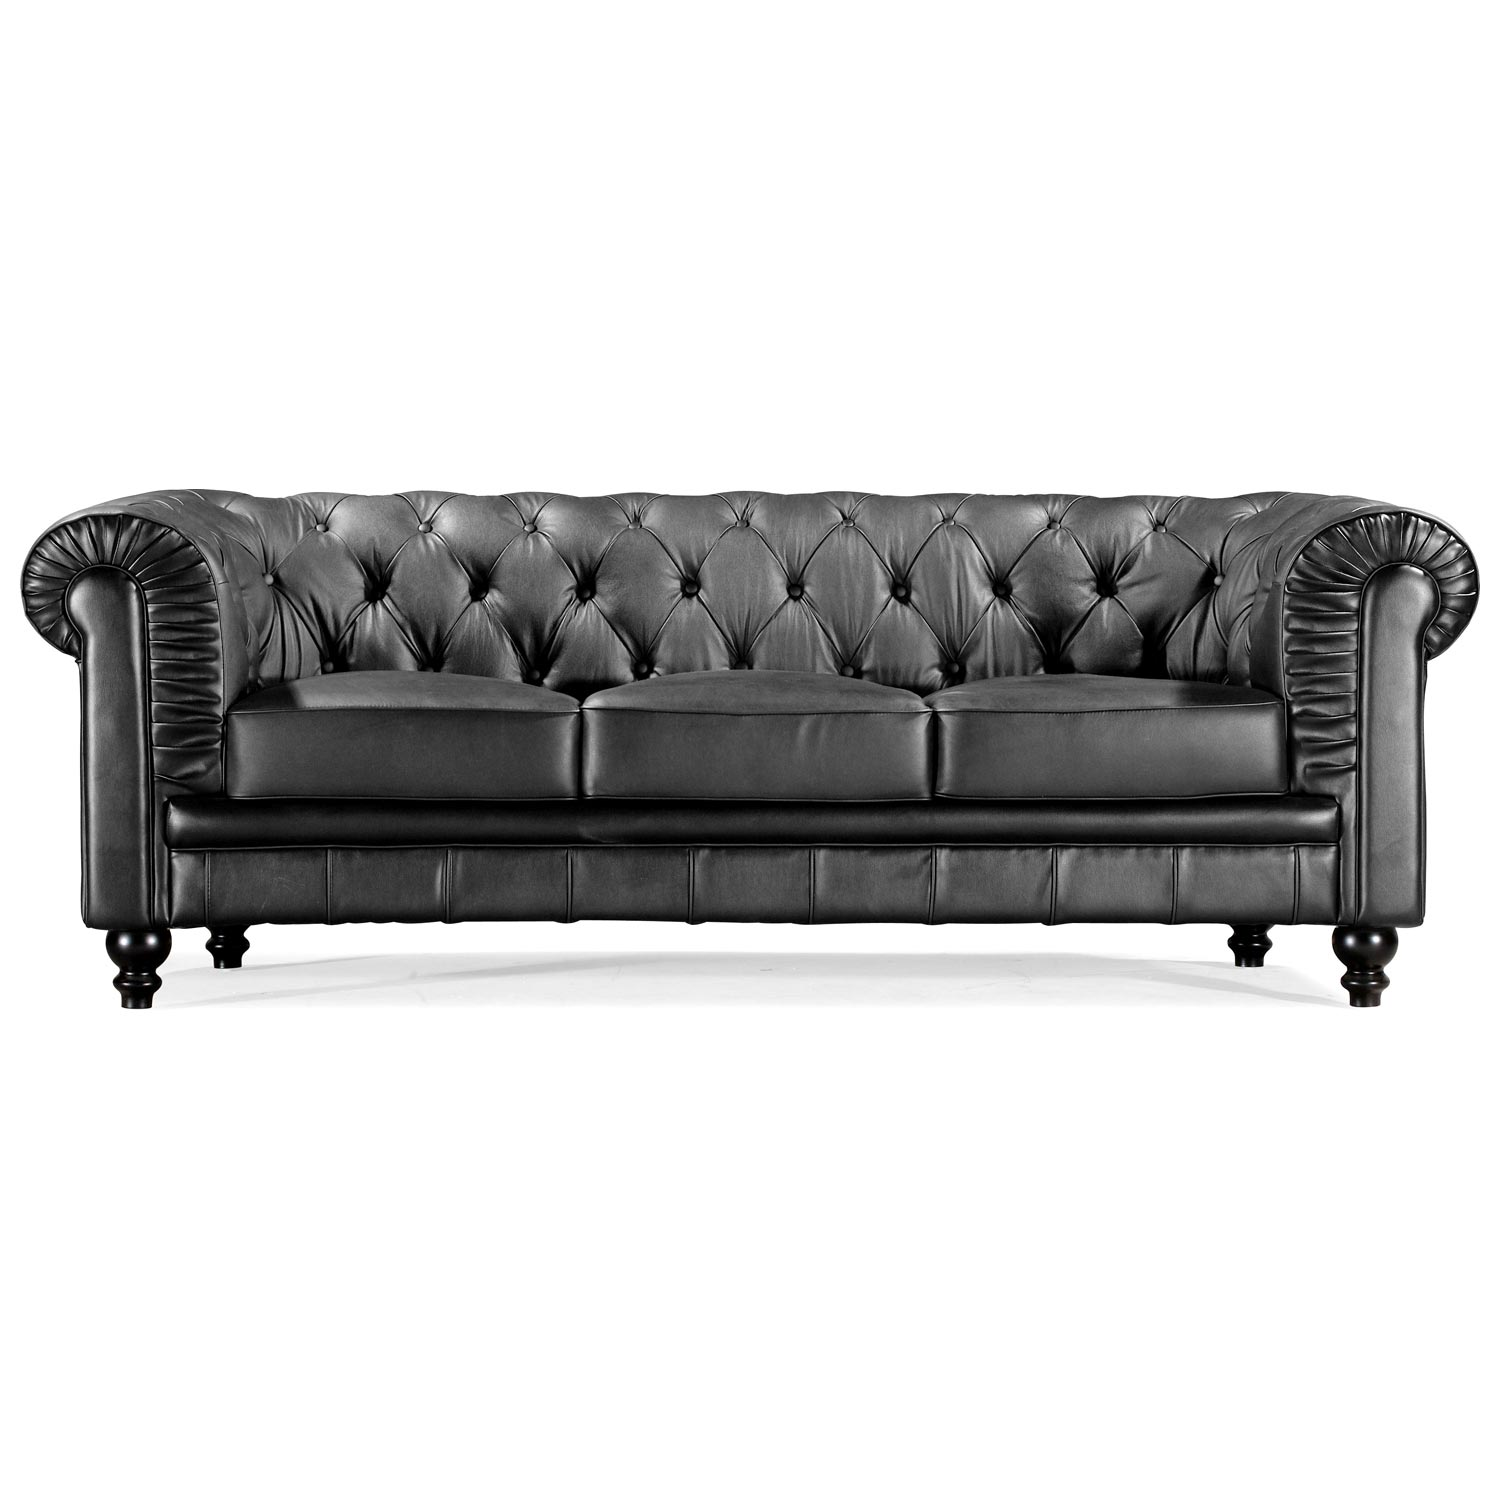 Aristocrat classic tufted leather sofa dcg stores for Traditional leather sofas sale